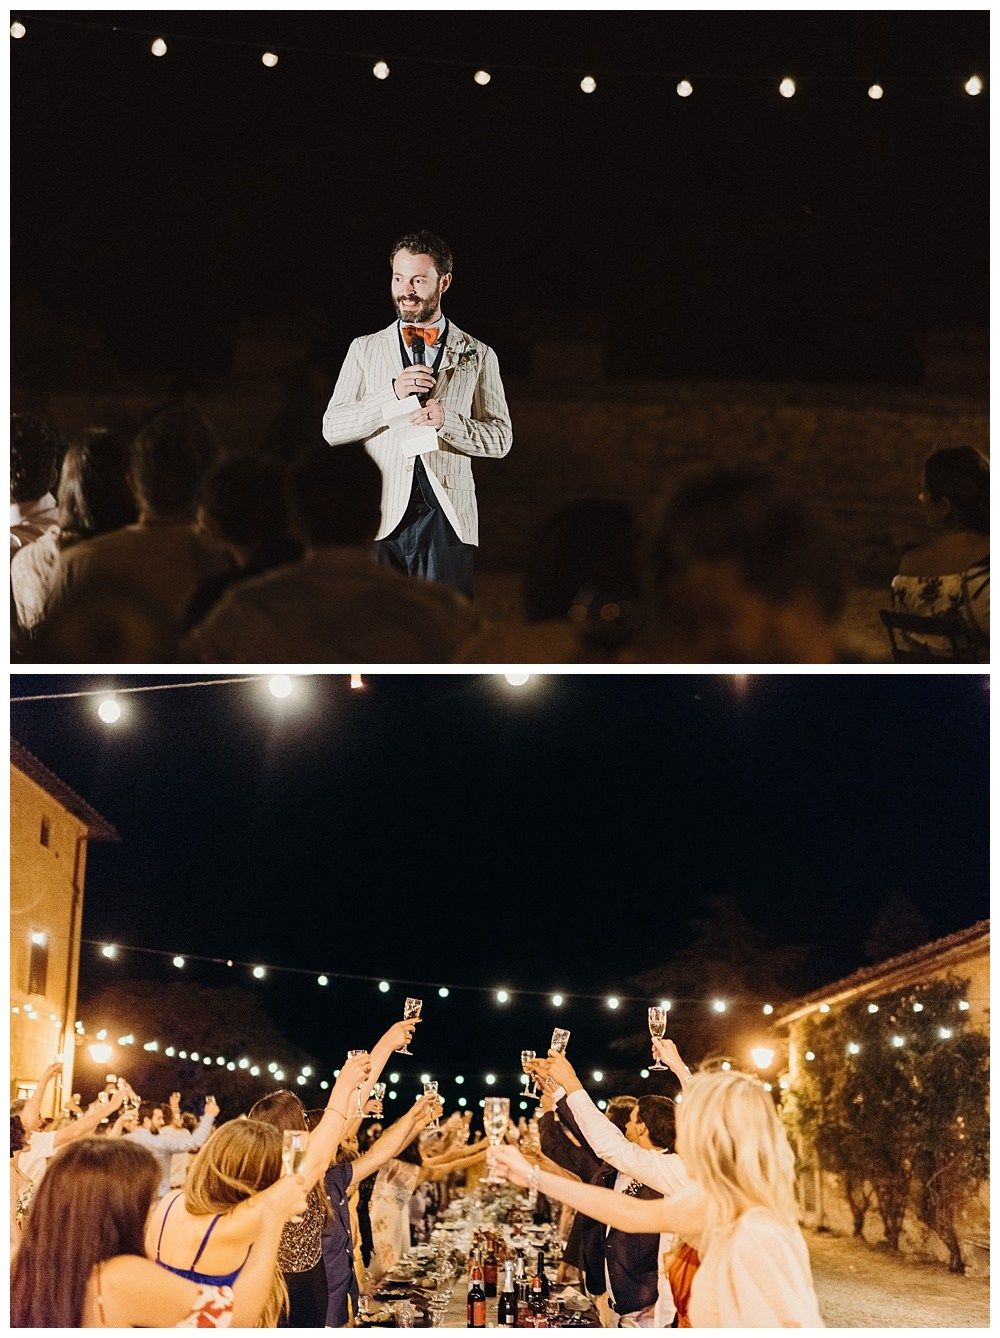 Grooms Speech And Toasts At Italian Wedding In Tuscany